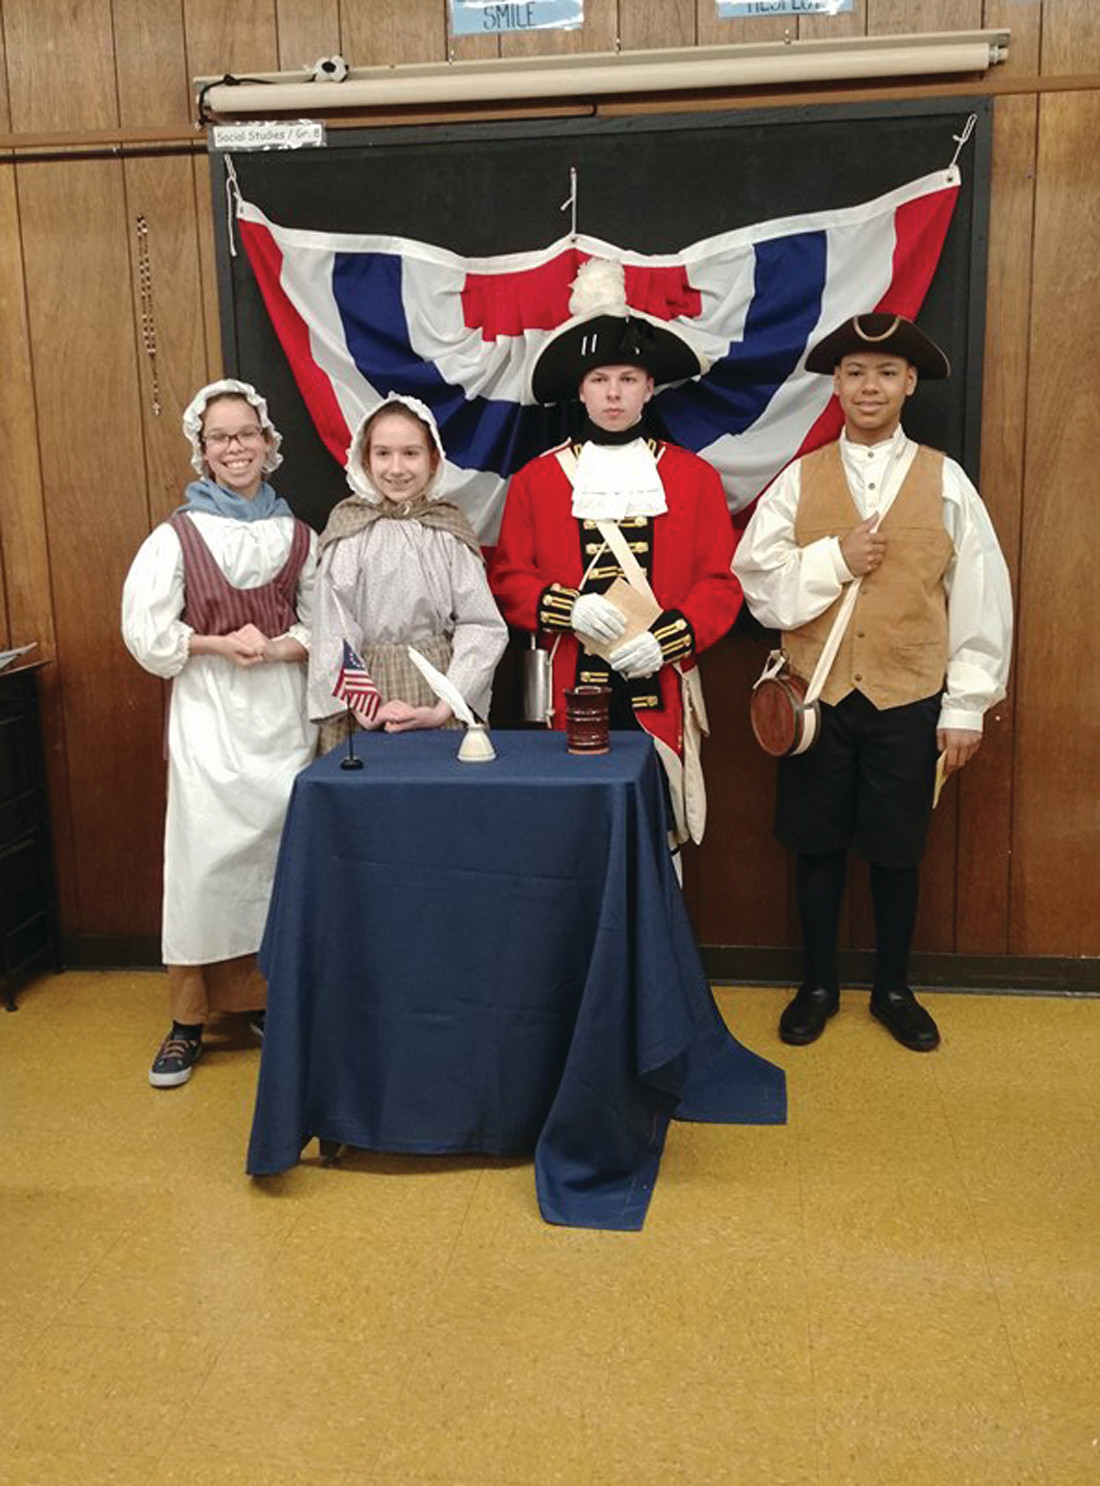 TODAY'S NEWS: Devin Aeid, Giancarlos Villavicenio, Kaitlyn Wojtyna, and Jazmin Pierce were being filmed presenting the day's news in full revolutionary period costume on a recent Thursday morning.